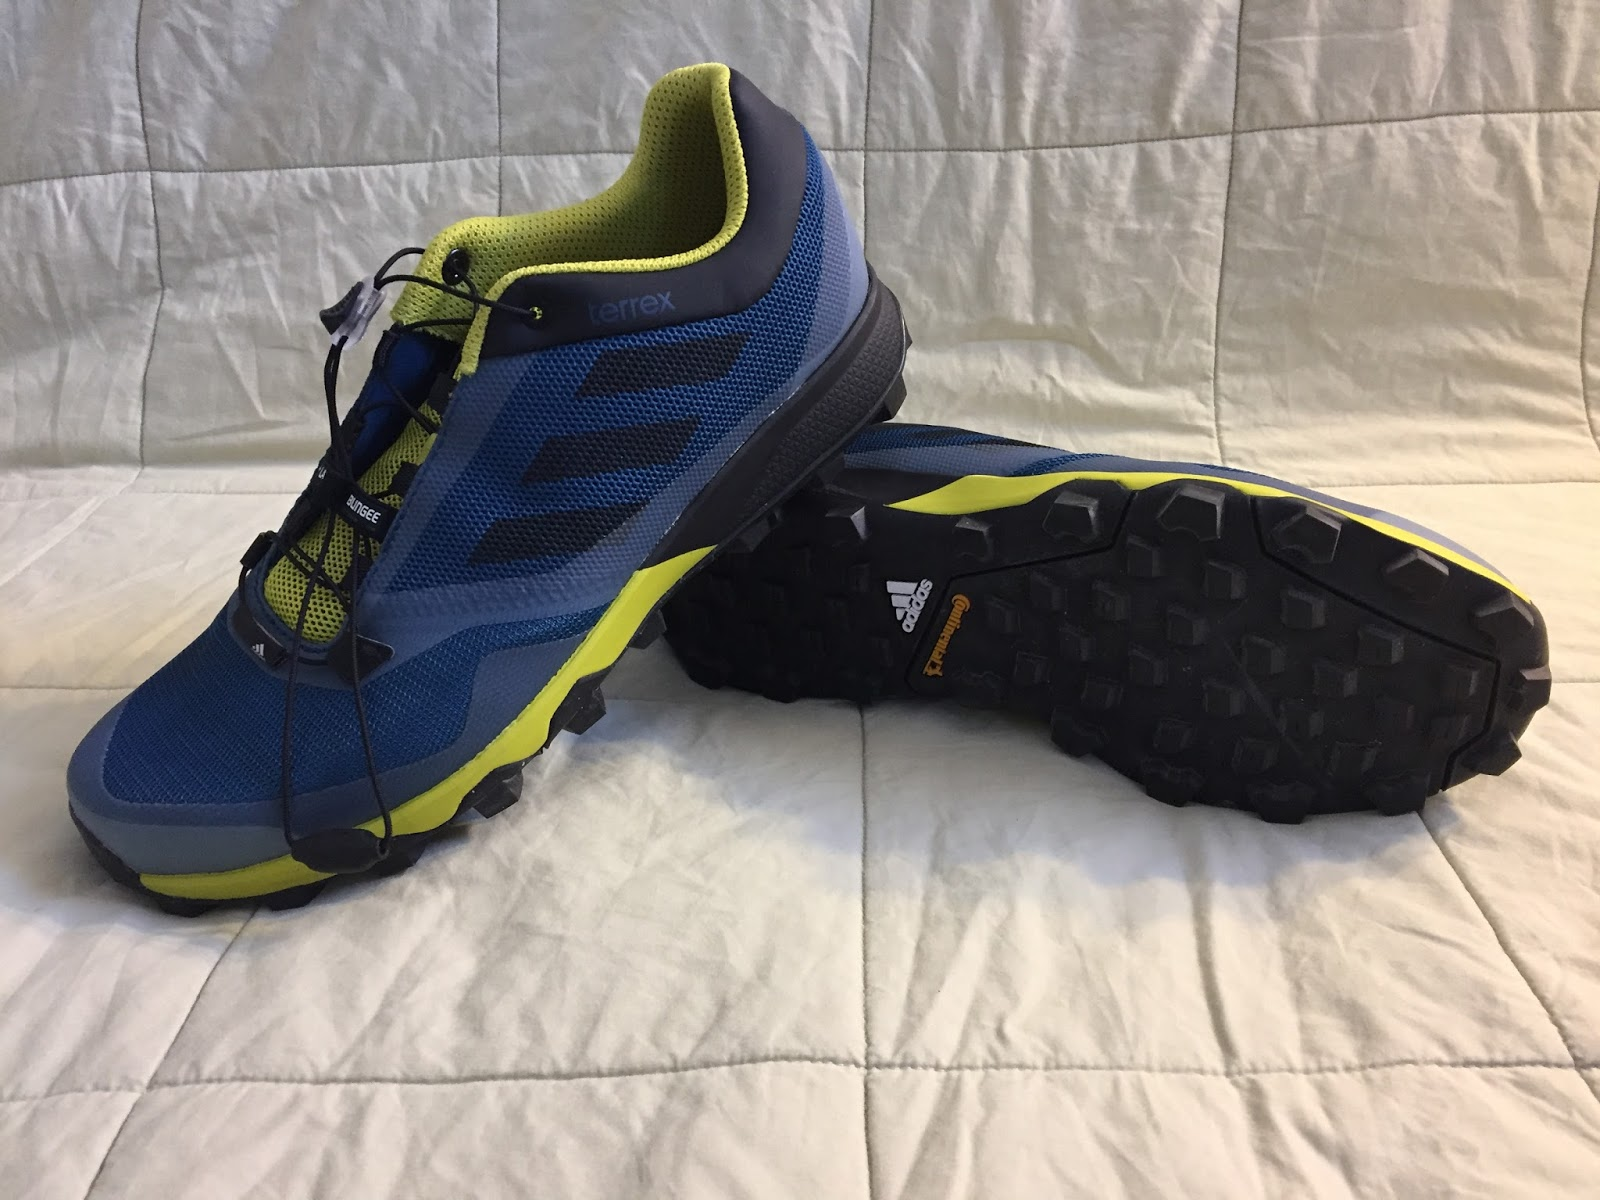 arrives retail prices first look Road Trail Run: adidas Terrex Trailmaker - Up Tempo Trail ...